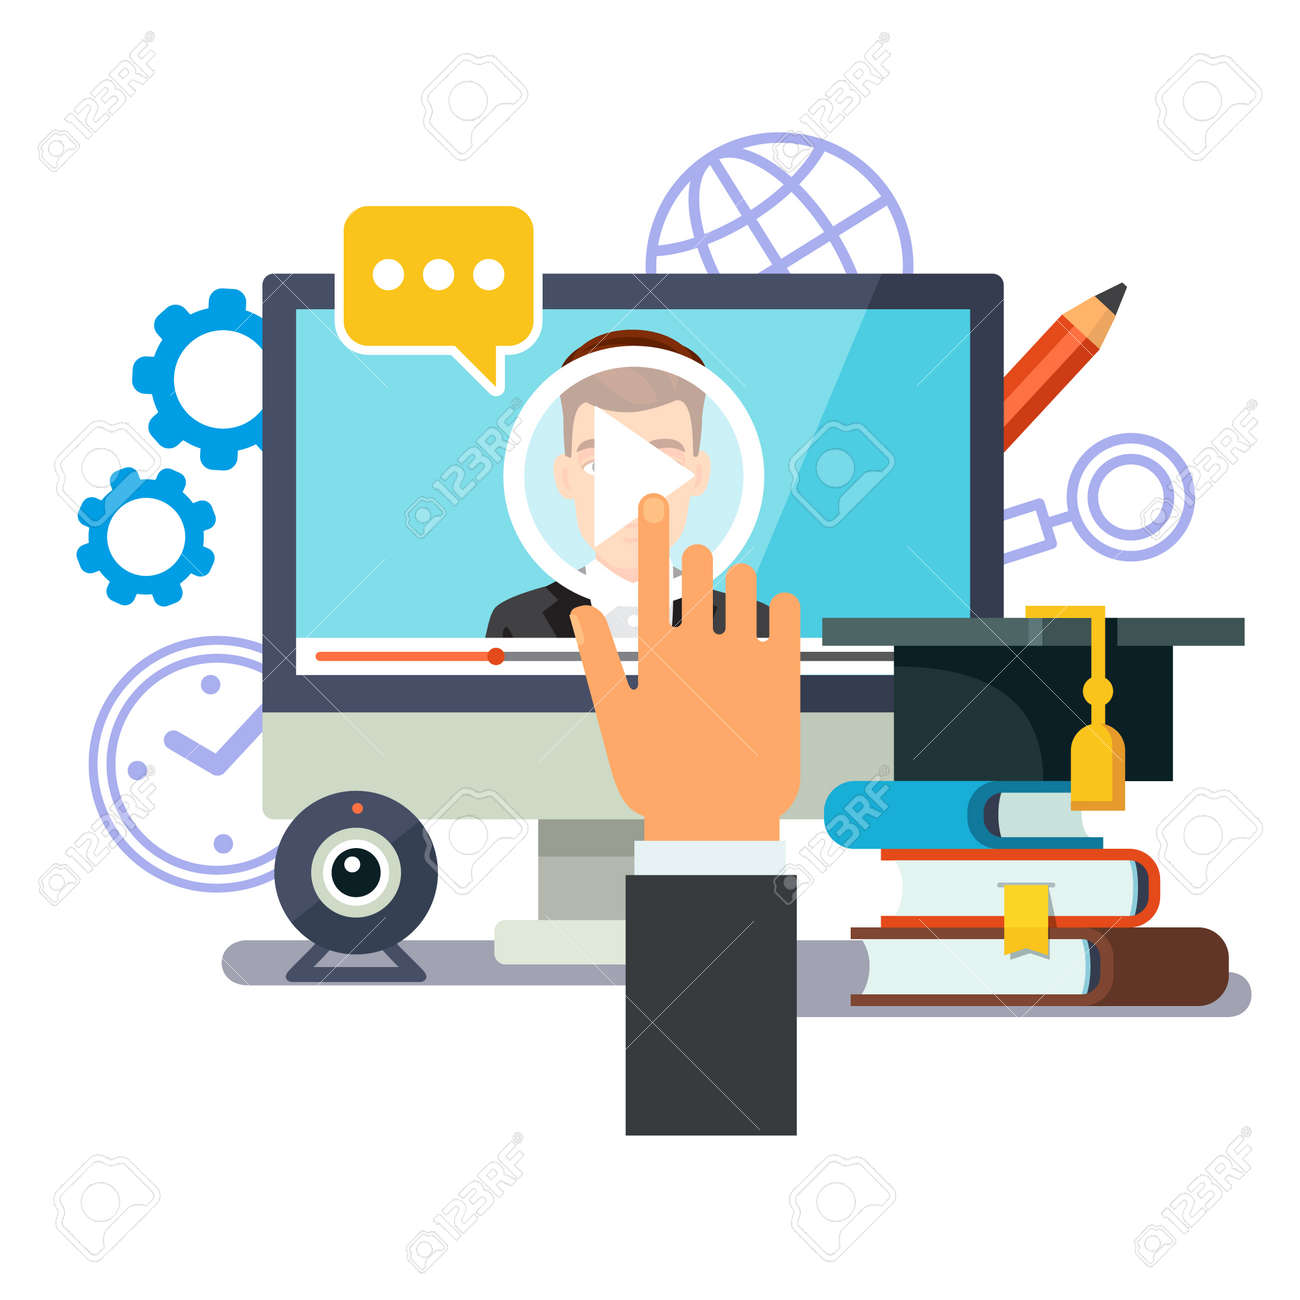 Online education and graduation. Webinar and video seminar learning concept. Businessman hand touching screen with lecture media. Flat style vector illustration isolated on white background. Stock Vector - 46168022